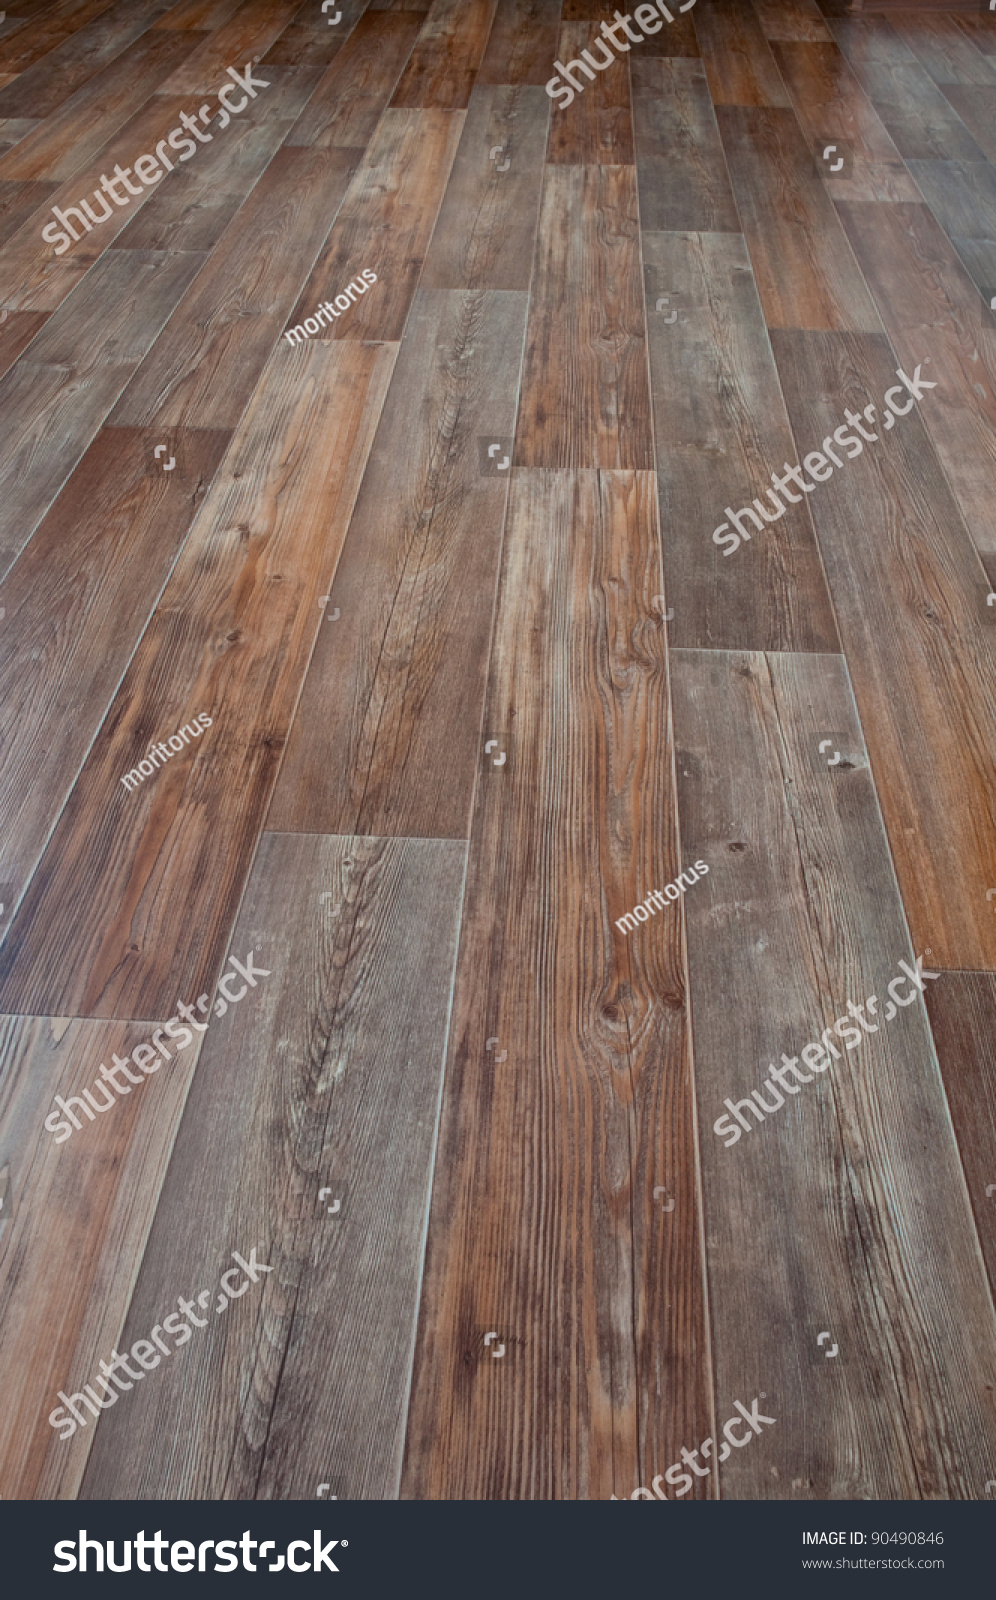 Linoleum floor covering imitation wood stock photo for Wood linoleum